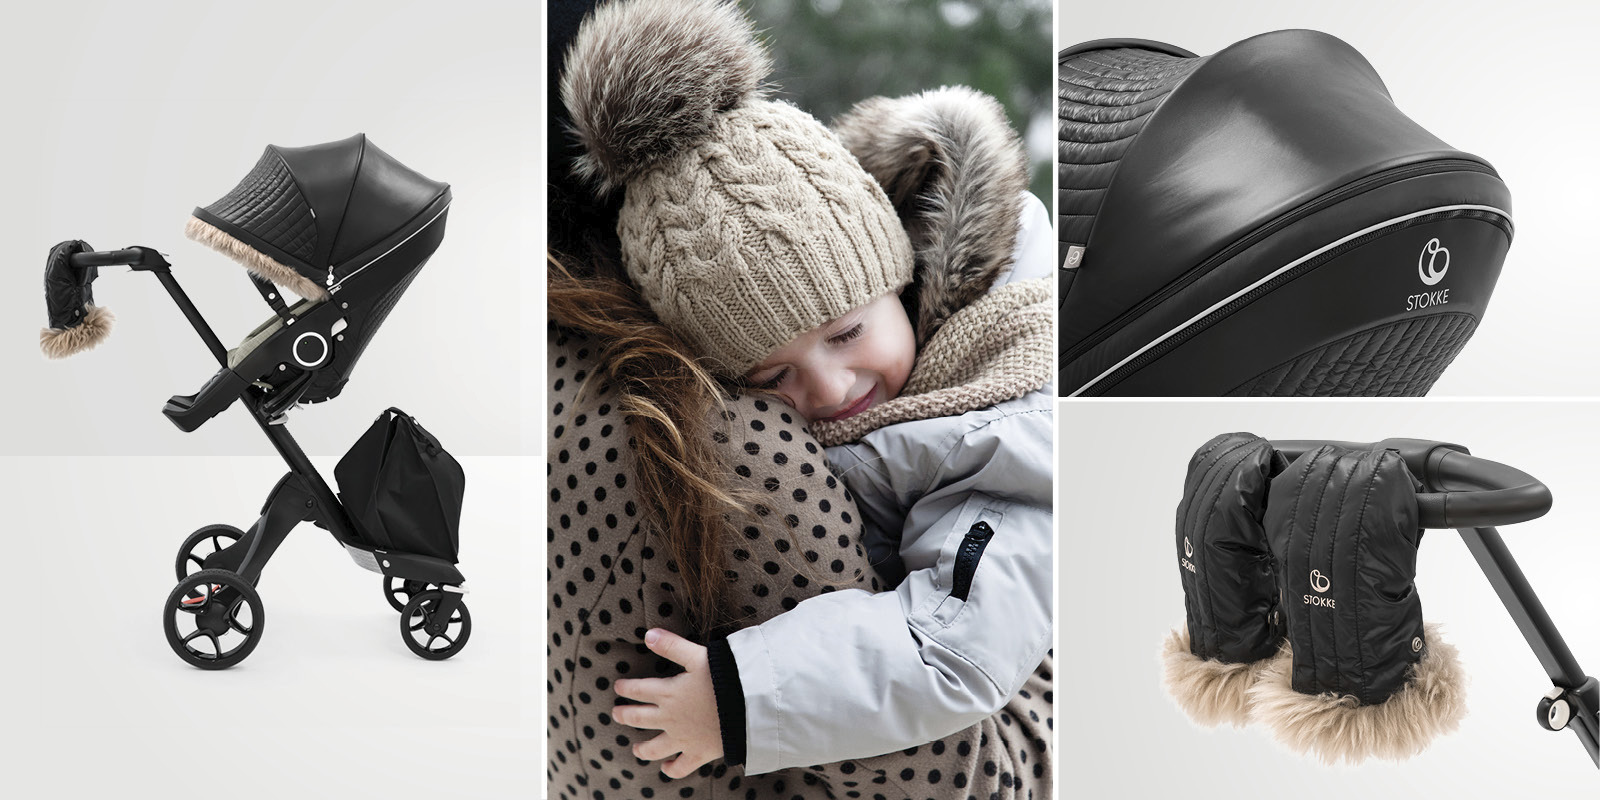 winter-kit-stokke-djecja-kolica